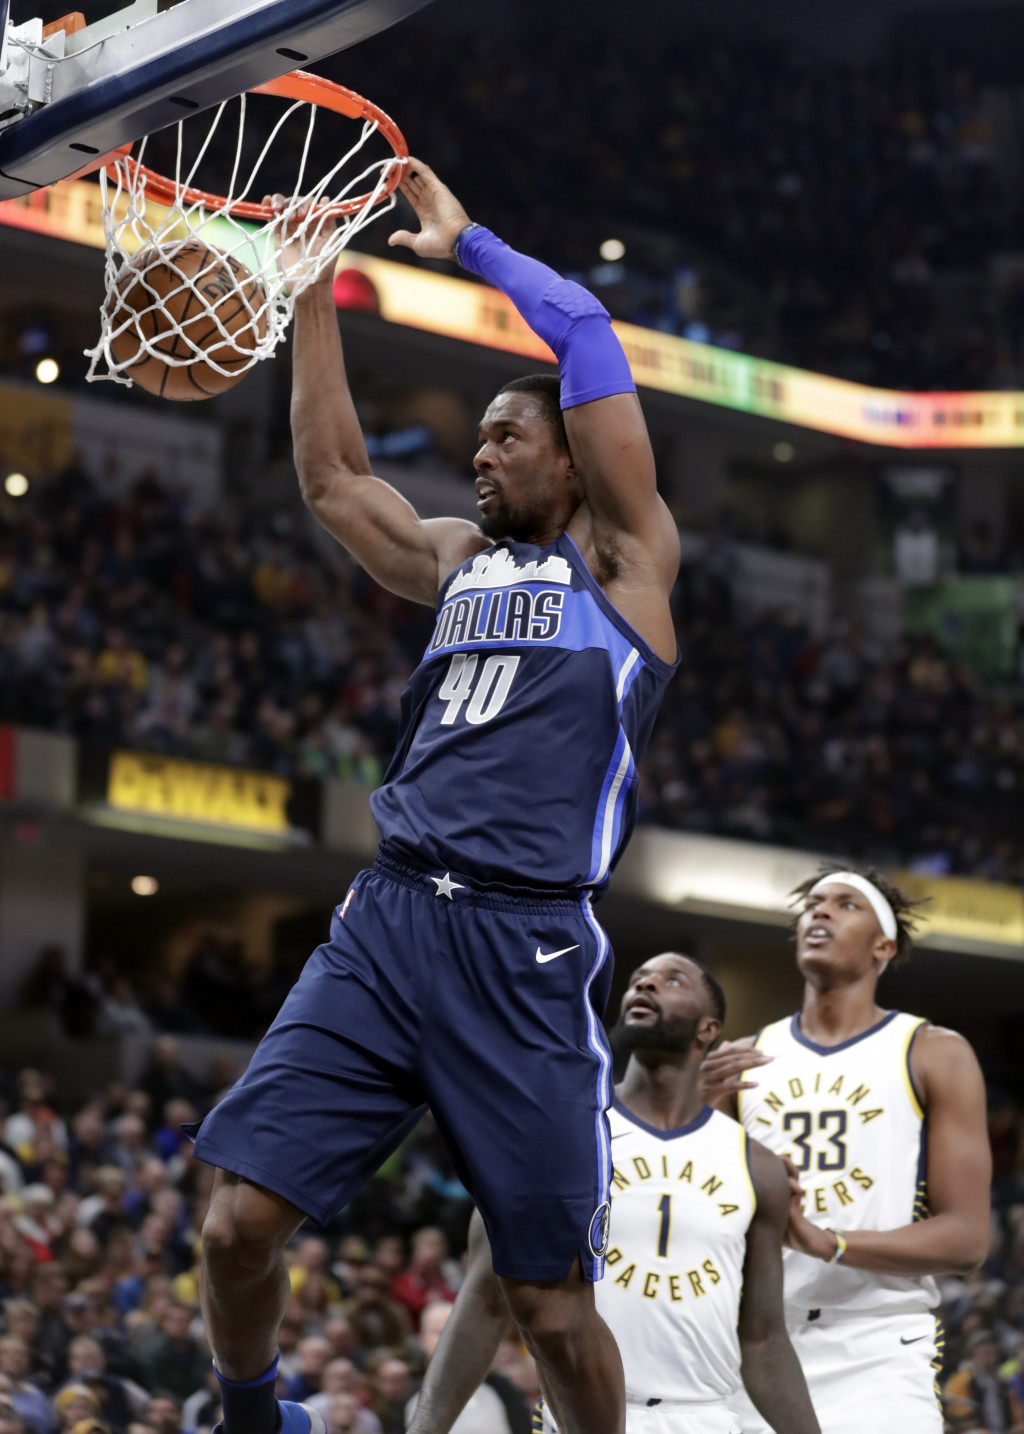 Dallas Mavericks forward Harrison Barnes dunks in front of Indiana Pacers center Myles Turner (33) and guard Lance Stephenson (1) during the first hal...